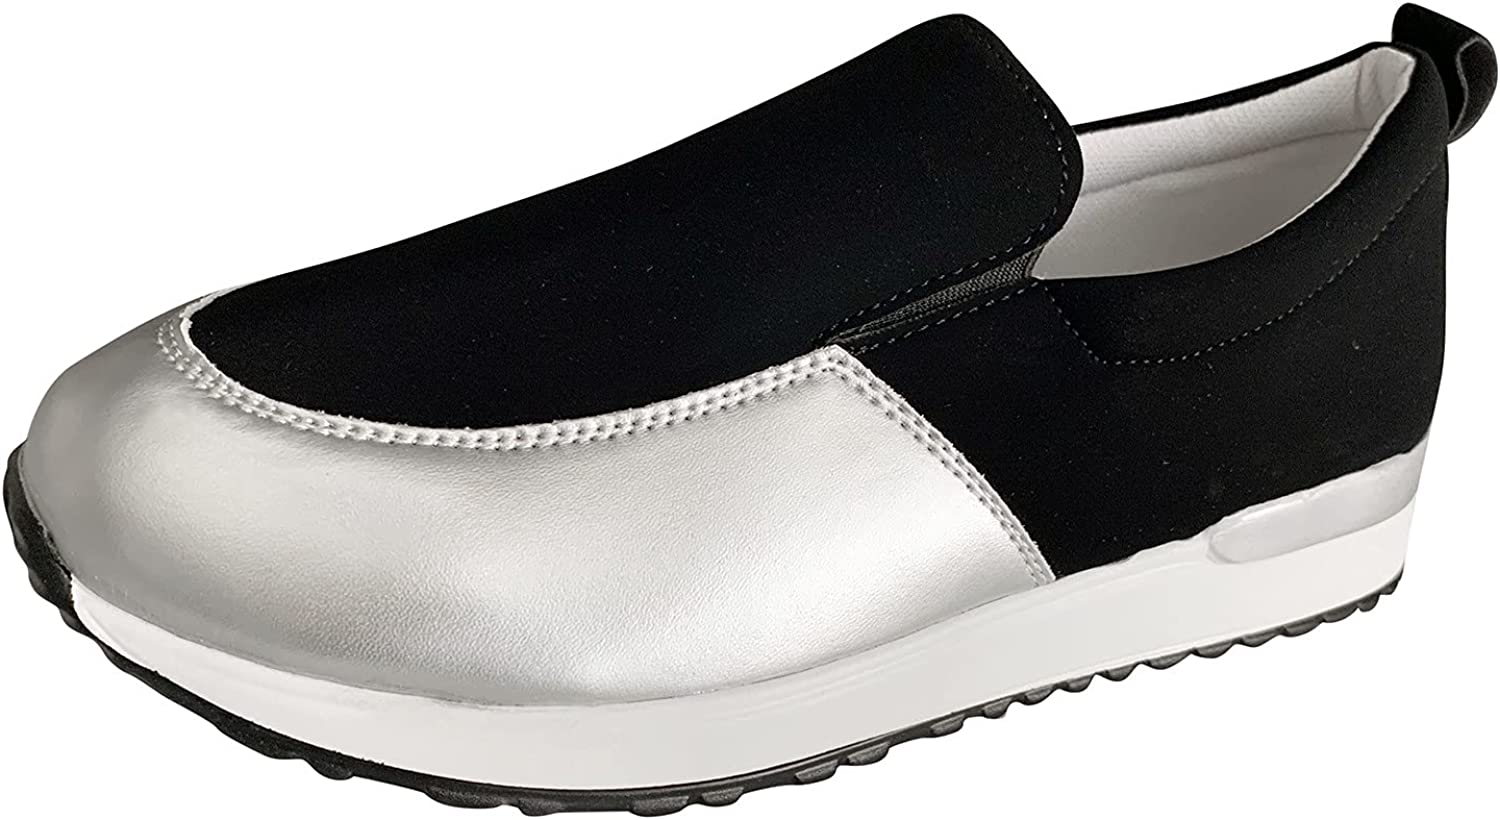 FAMOORE Women's Mules & Clogs Women Slip On Fashion Sneakers Mesh Sports Runing Breathable Waliking Shoes Women Comfort Wedge Platform Loafers